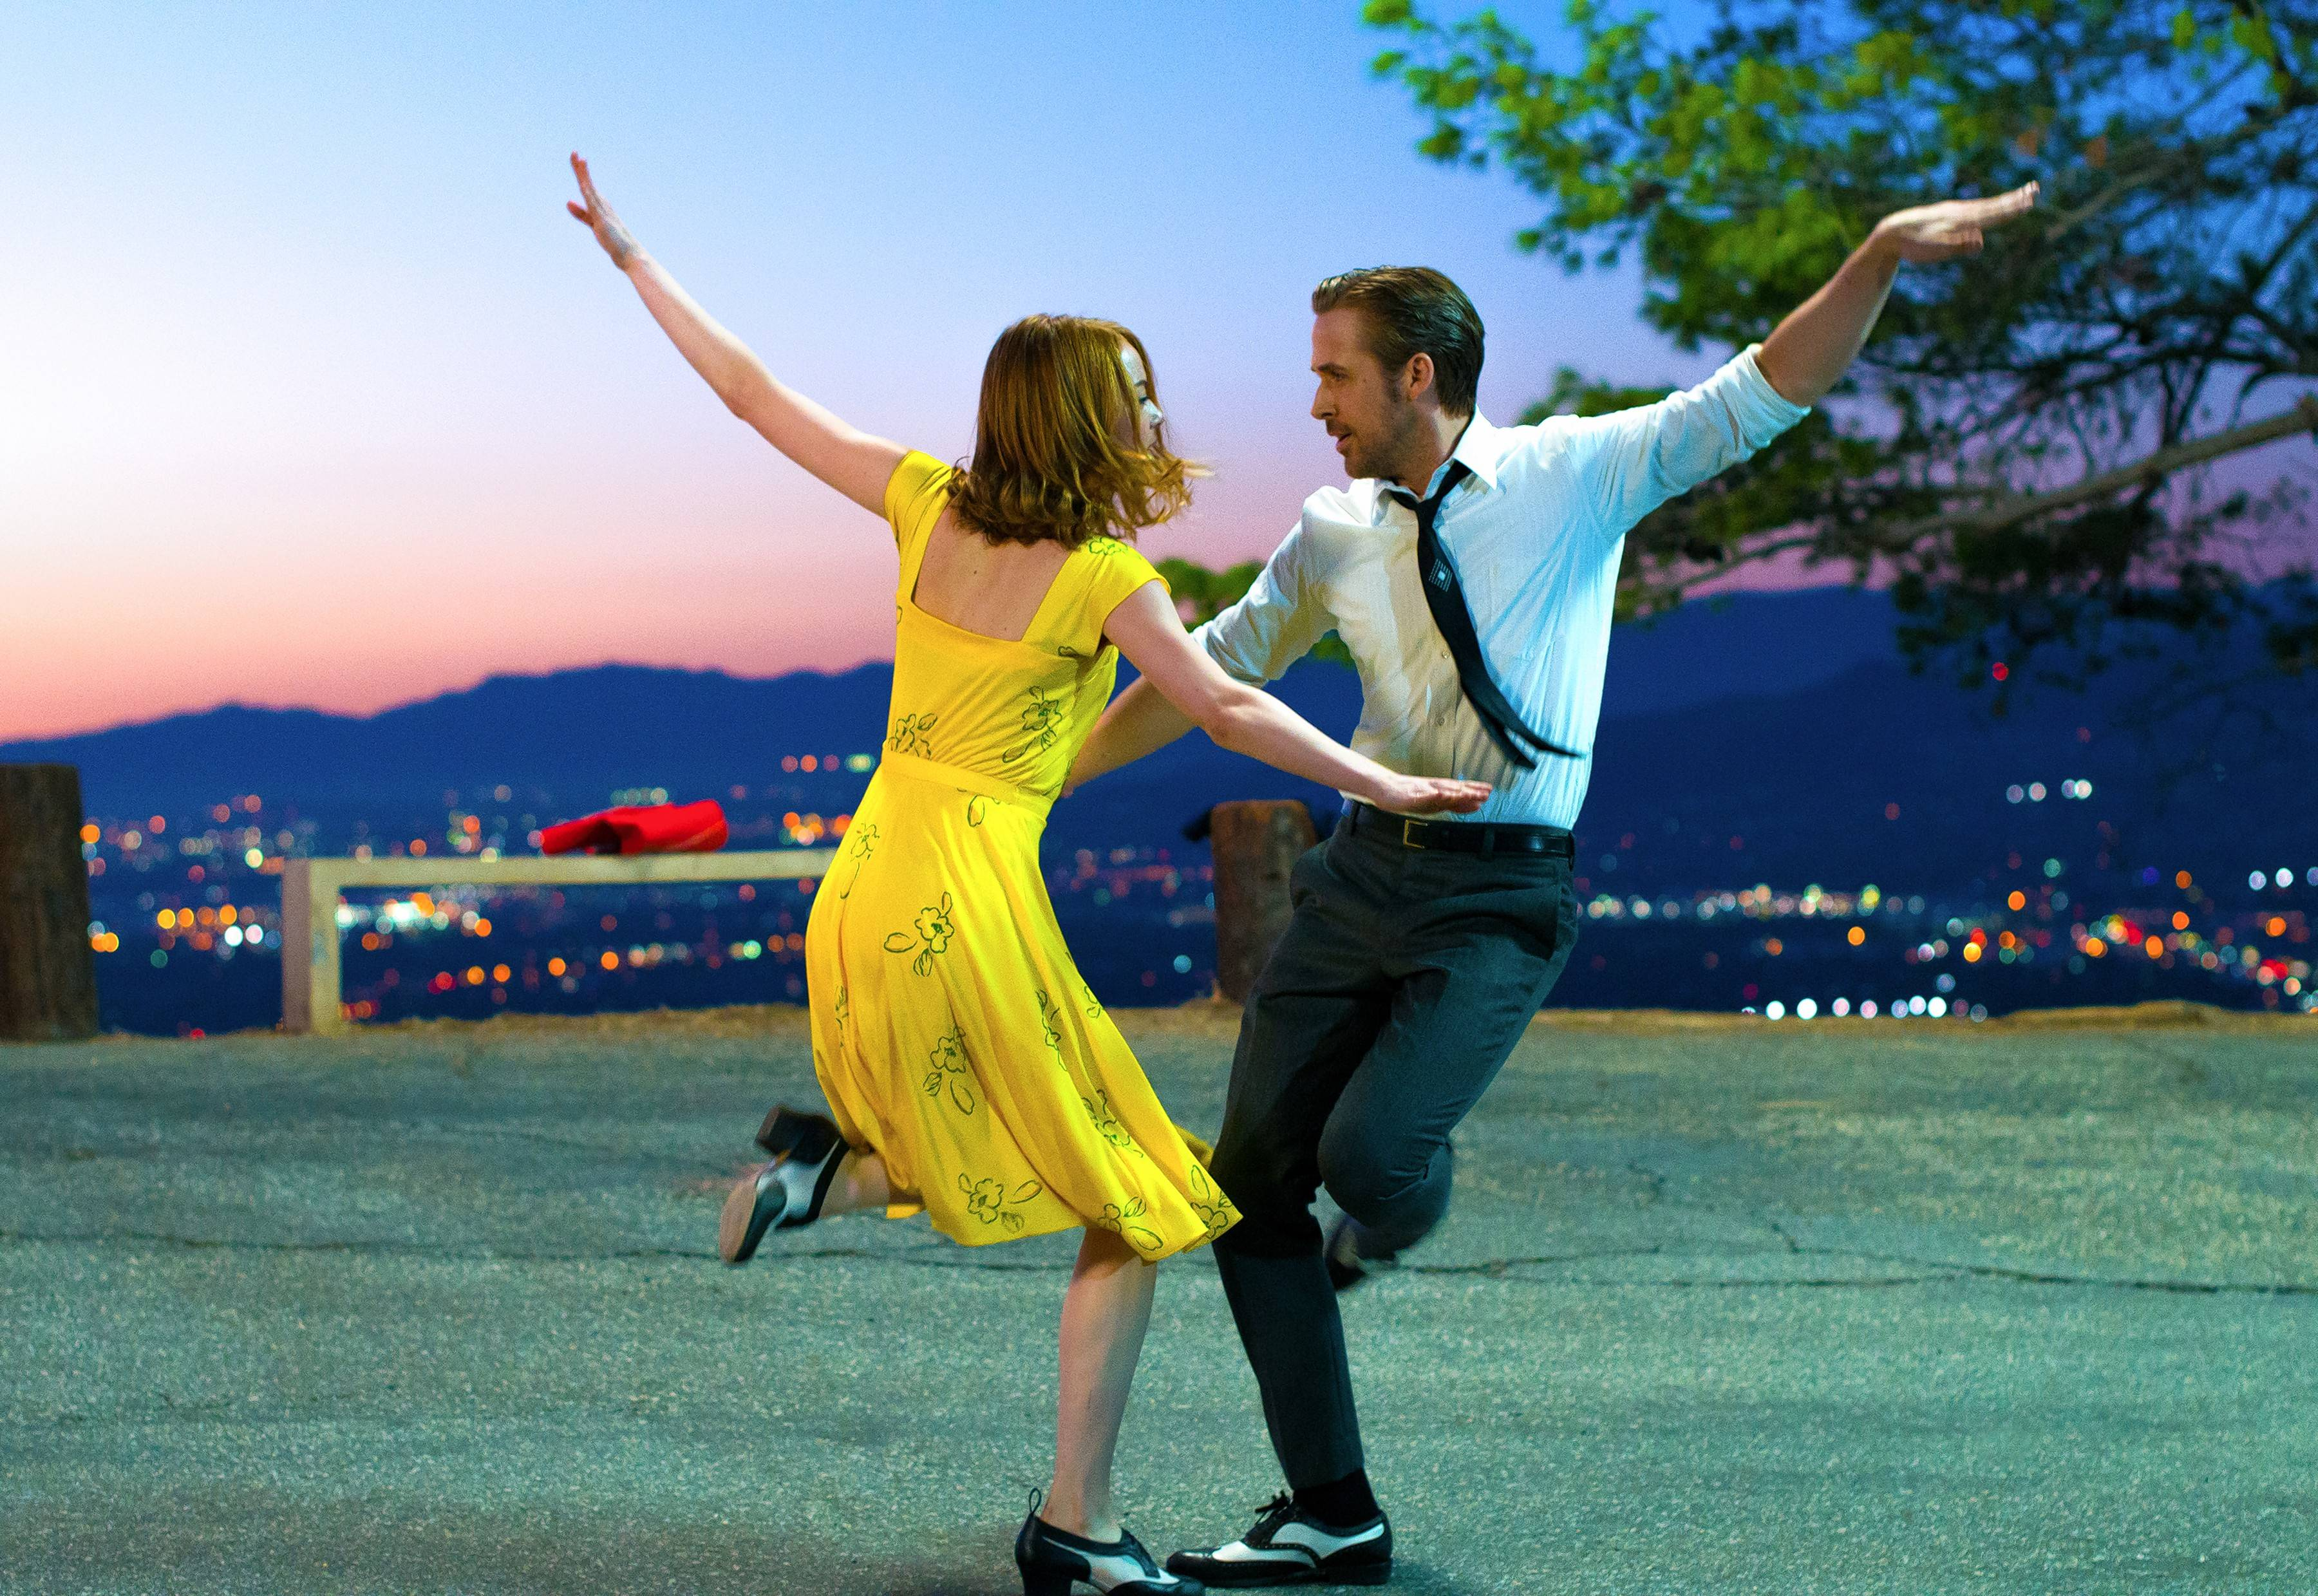 """La La Land"" danced away with 14 Academy Award nominations. Will Damien Chazelle's musical take home Best Picture?"